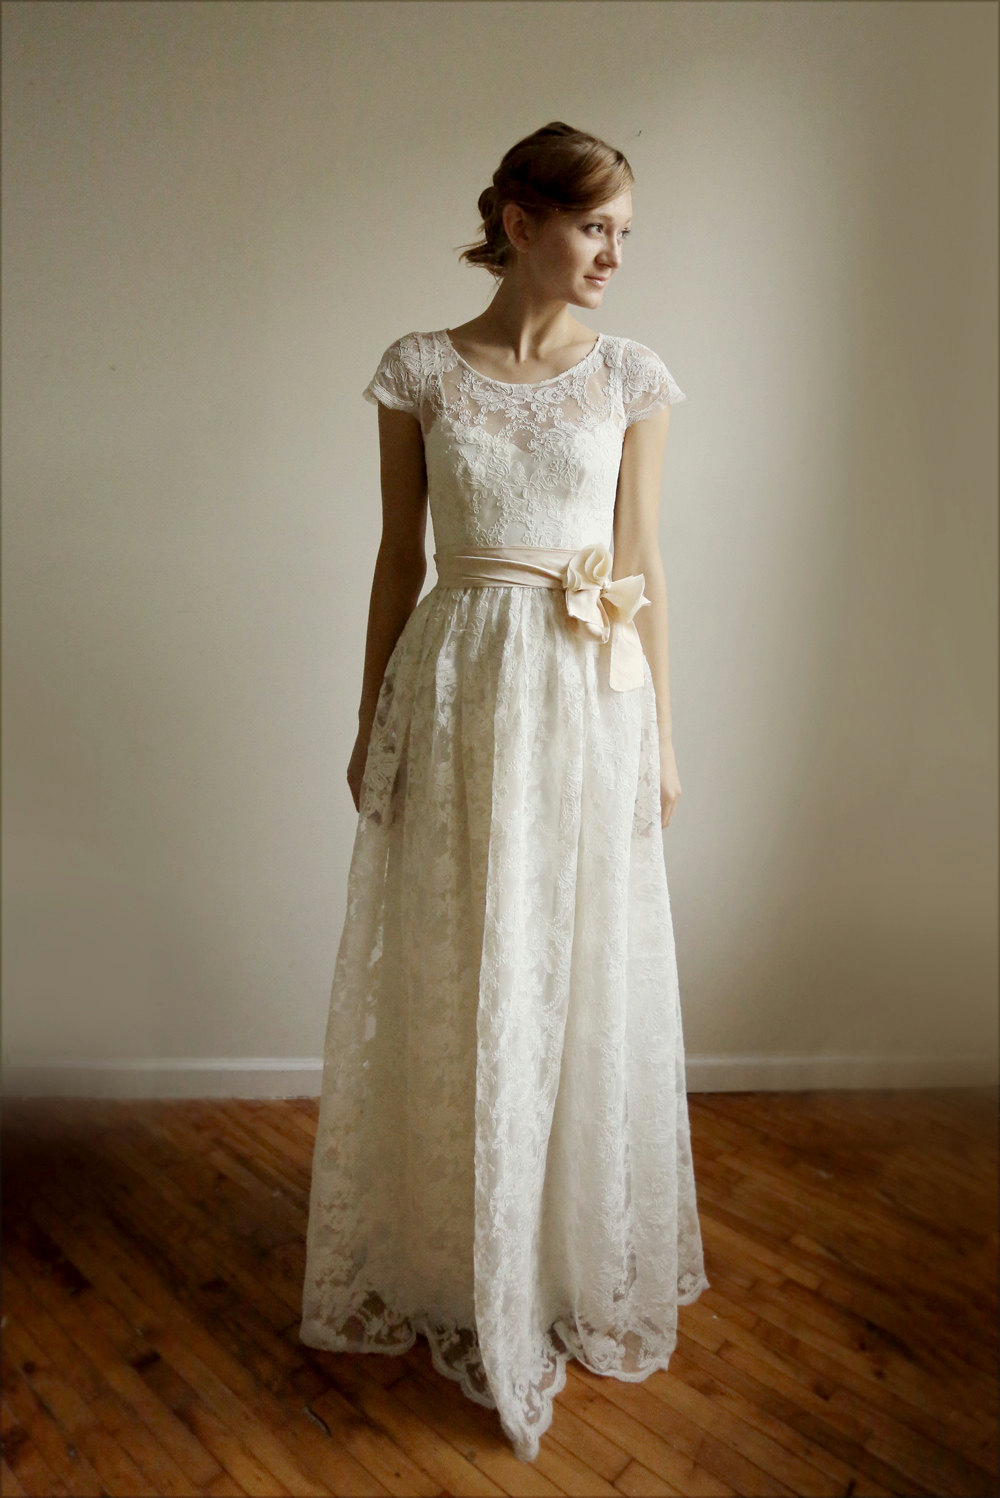 Etsy vintage wedding dresses for Etsy dresses for weddings